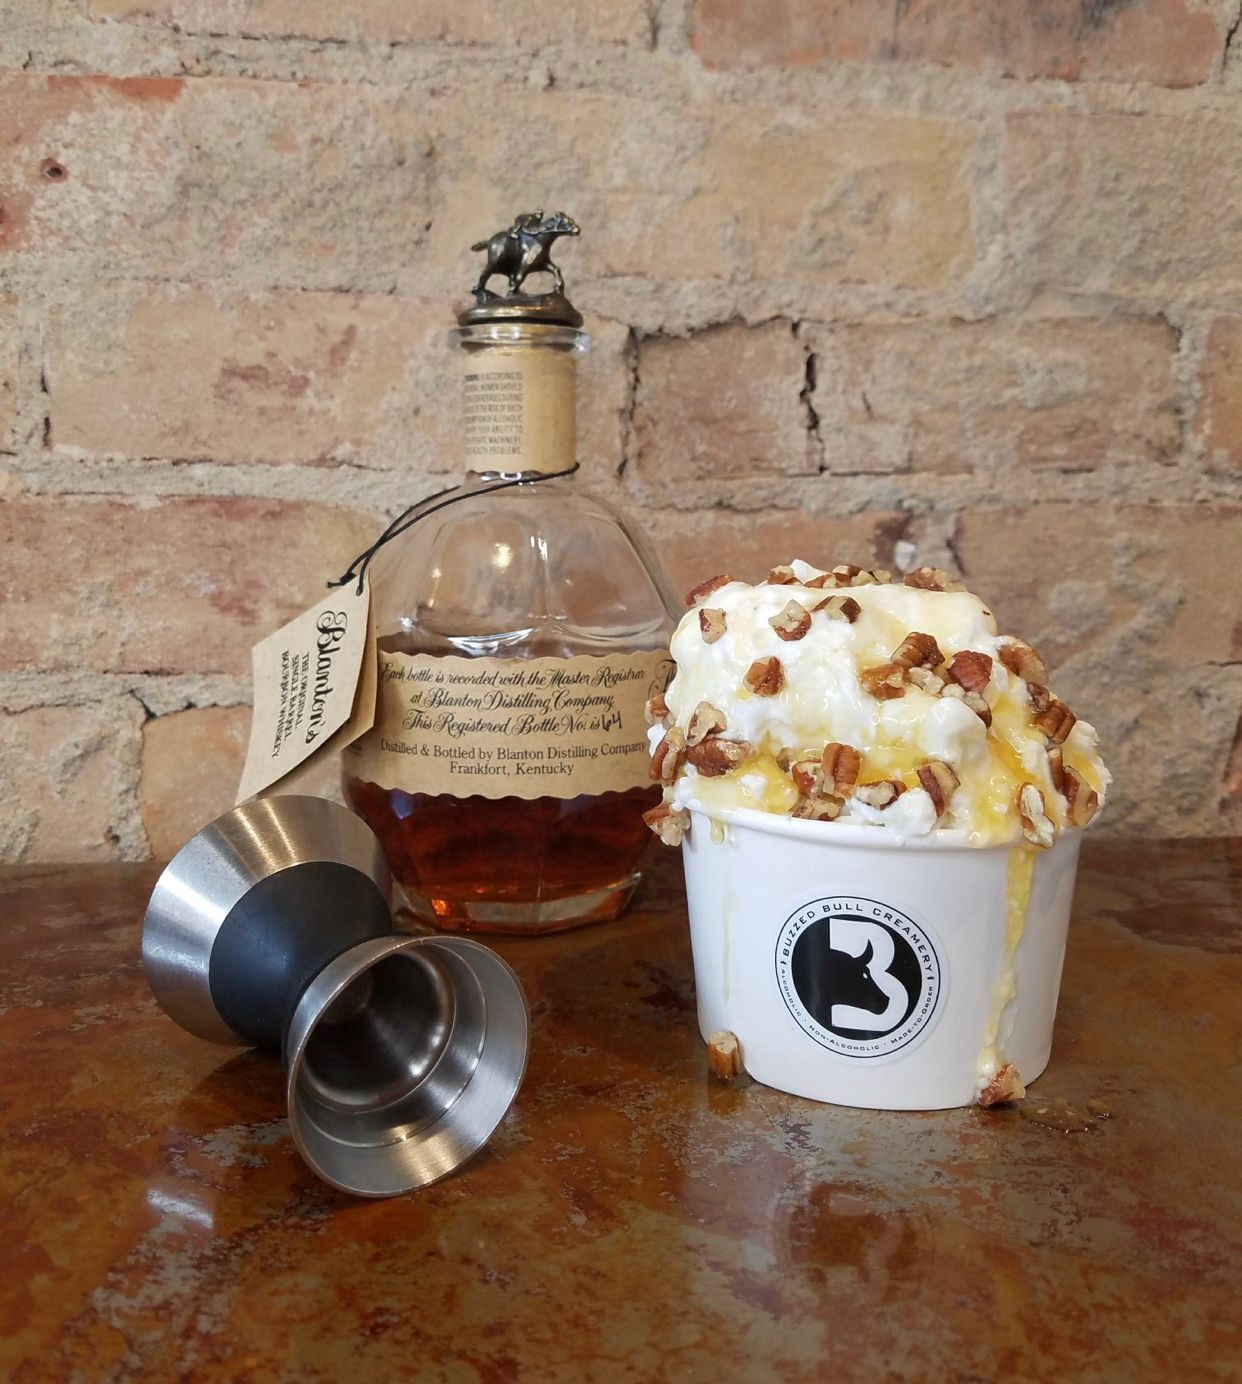 Buzzed Bull Creamery in Wilmington, NC Announces Opening Date